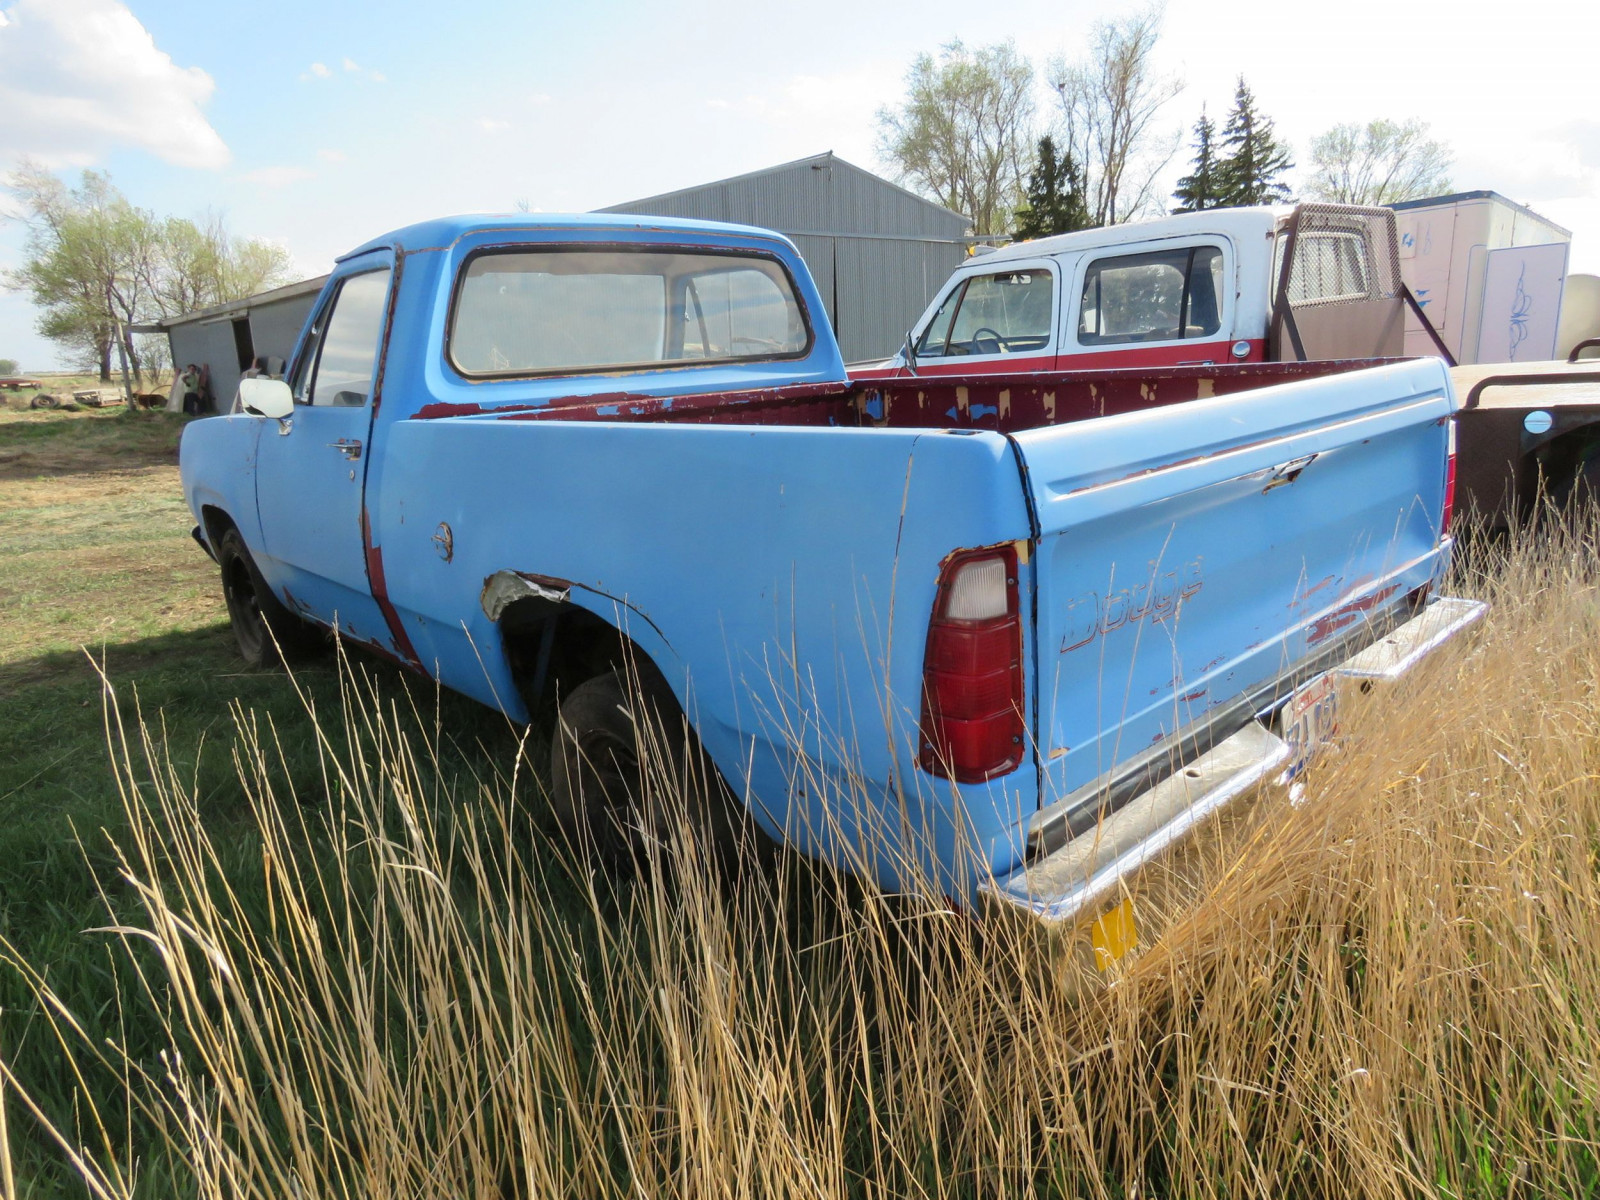 1979 Dodge Pickup - Image 4